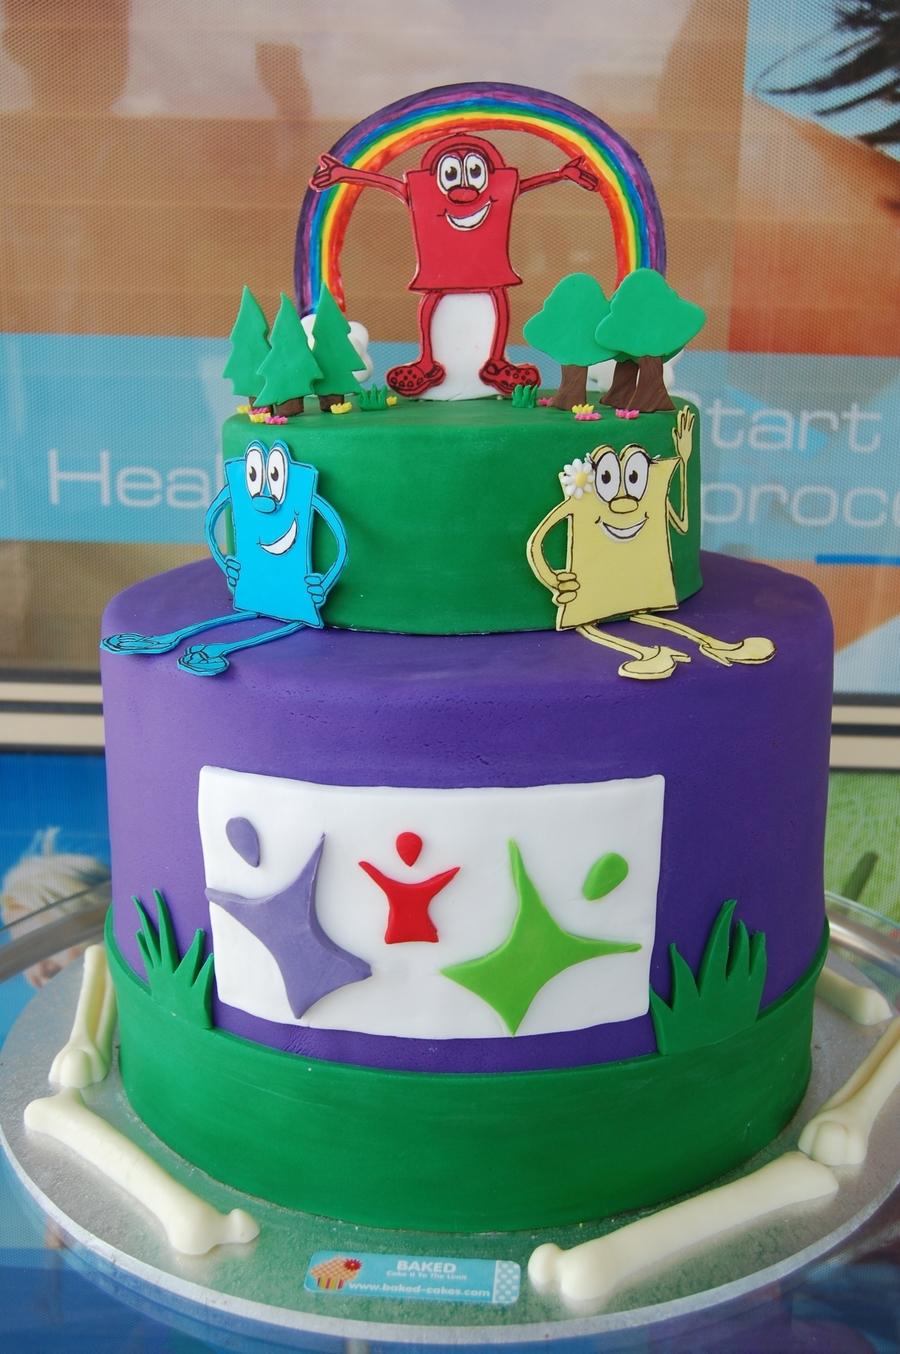 """family Fun Day"" Cake For A Chiropractic Clinic on Cake Central"